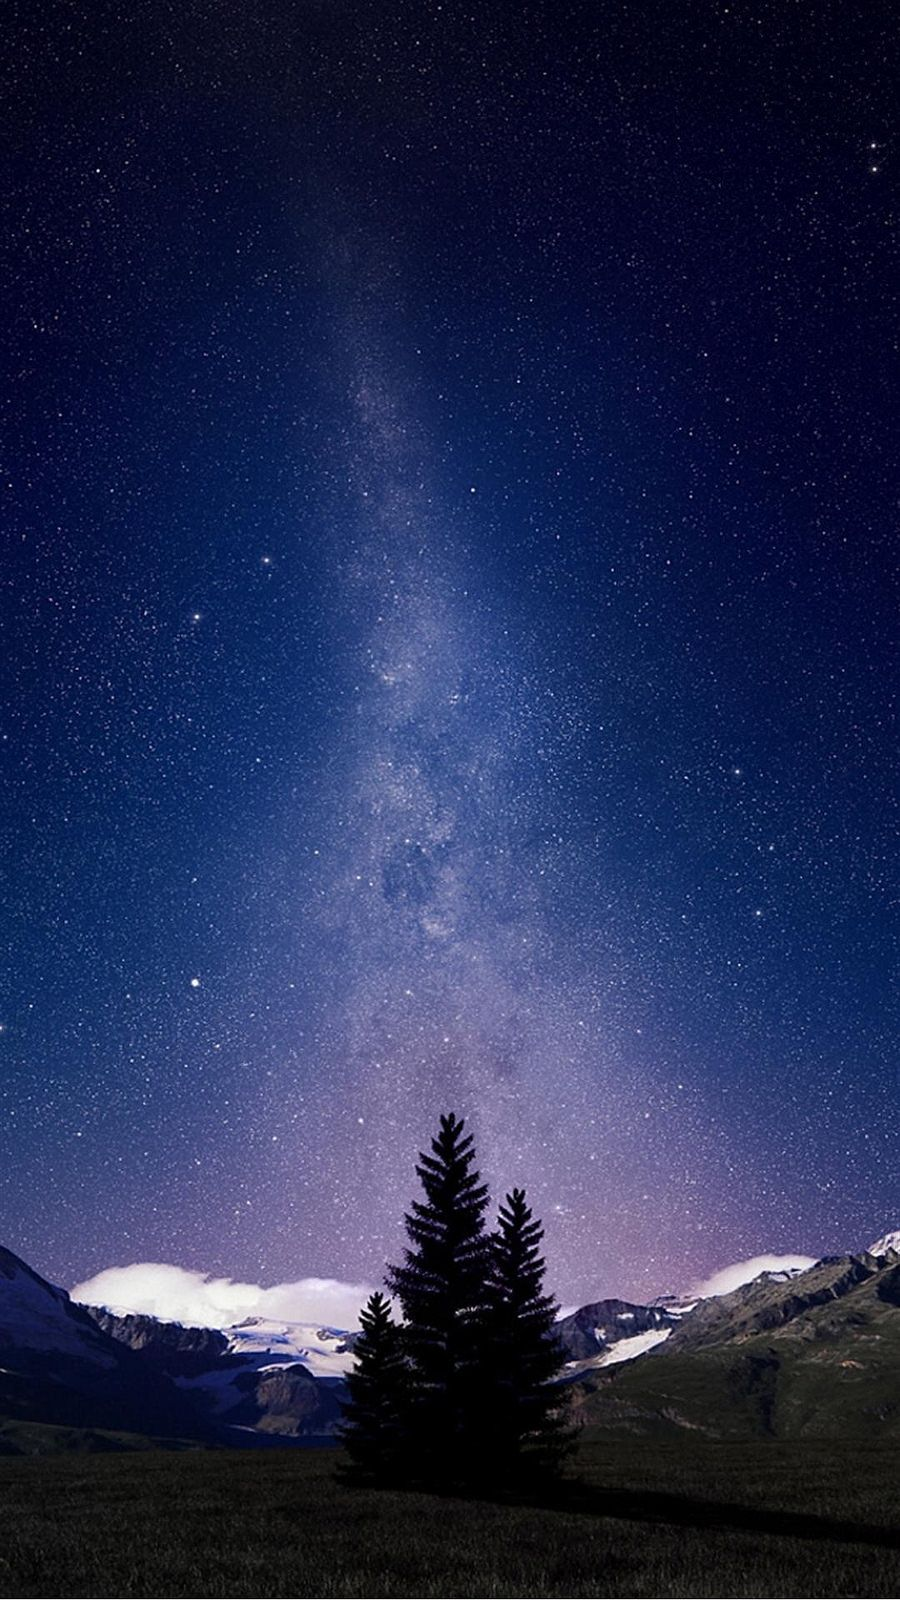 Wallpaper Iphone 6 Plus Ios 8 Full Hd 4k Beautiful Night Sky Nature Wallpaper Watercolor Wallpaper Iphone